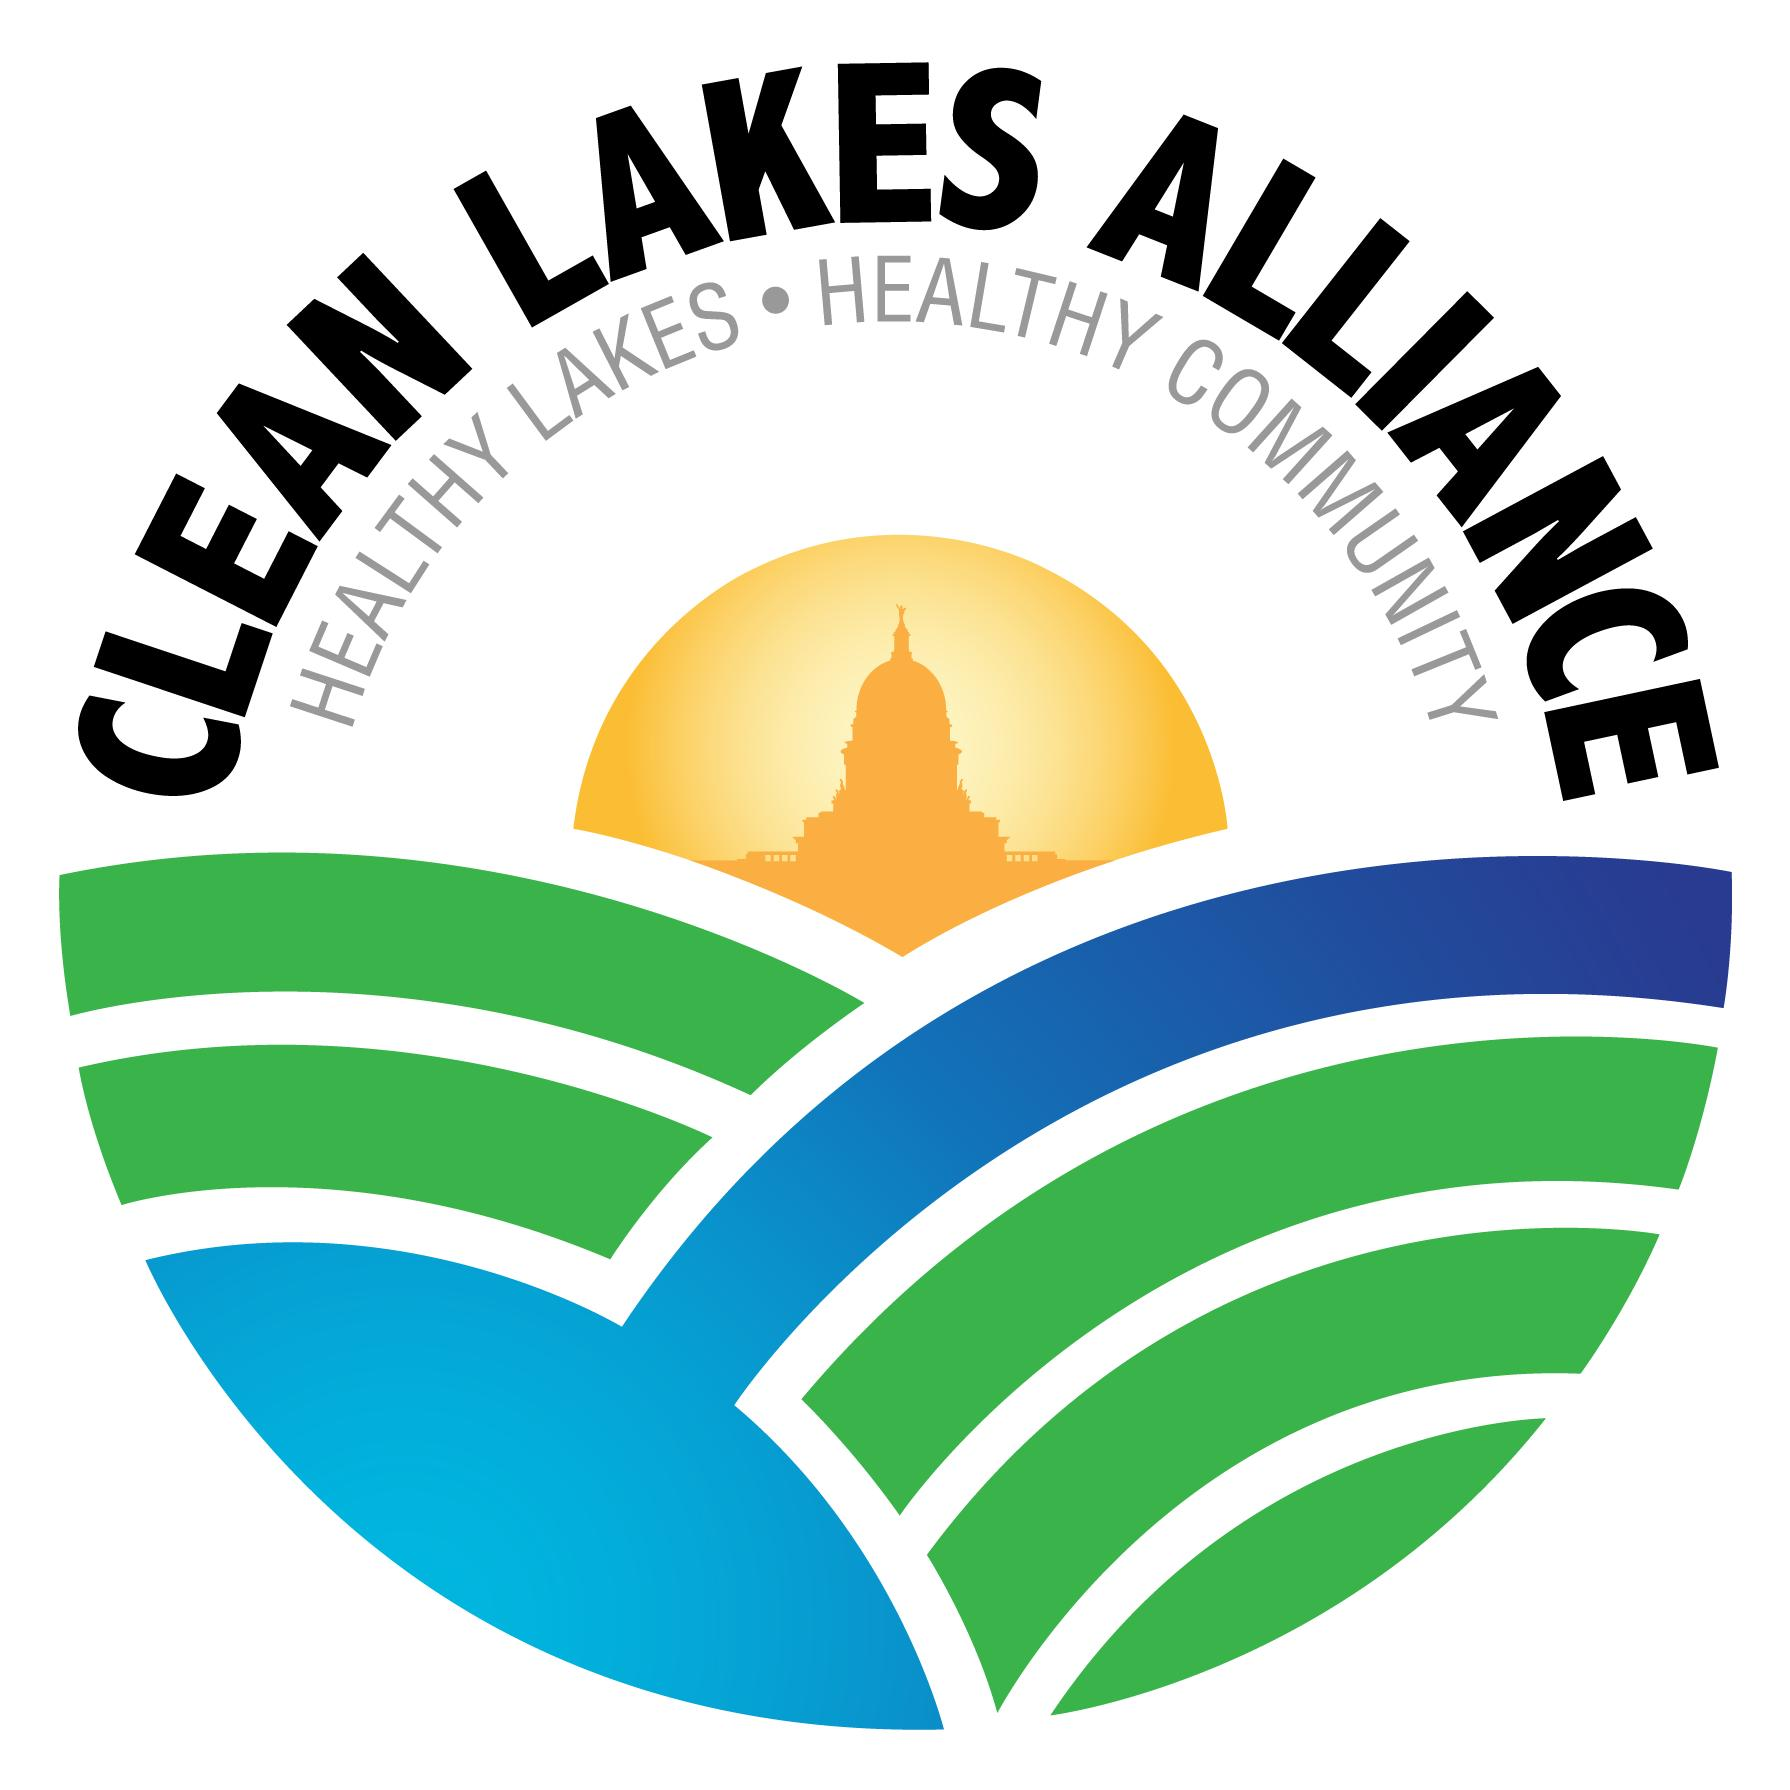 Clean Lakes Alliance, Inc. logo